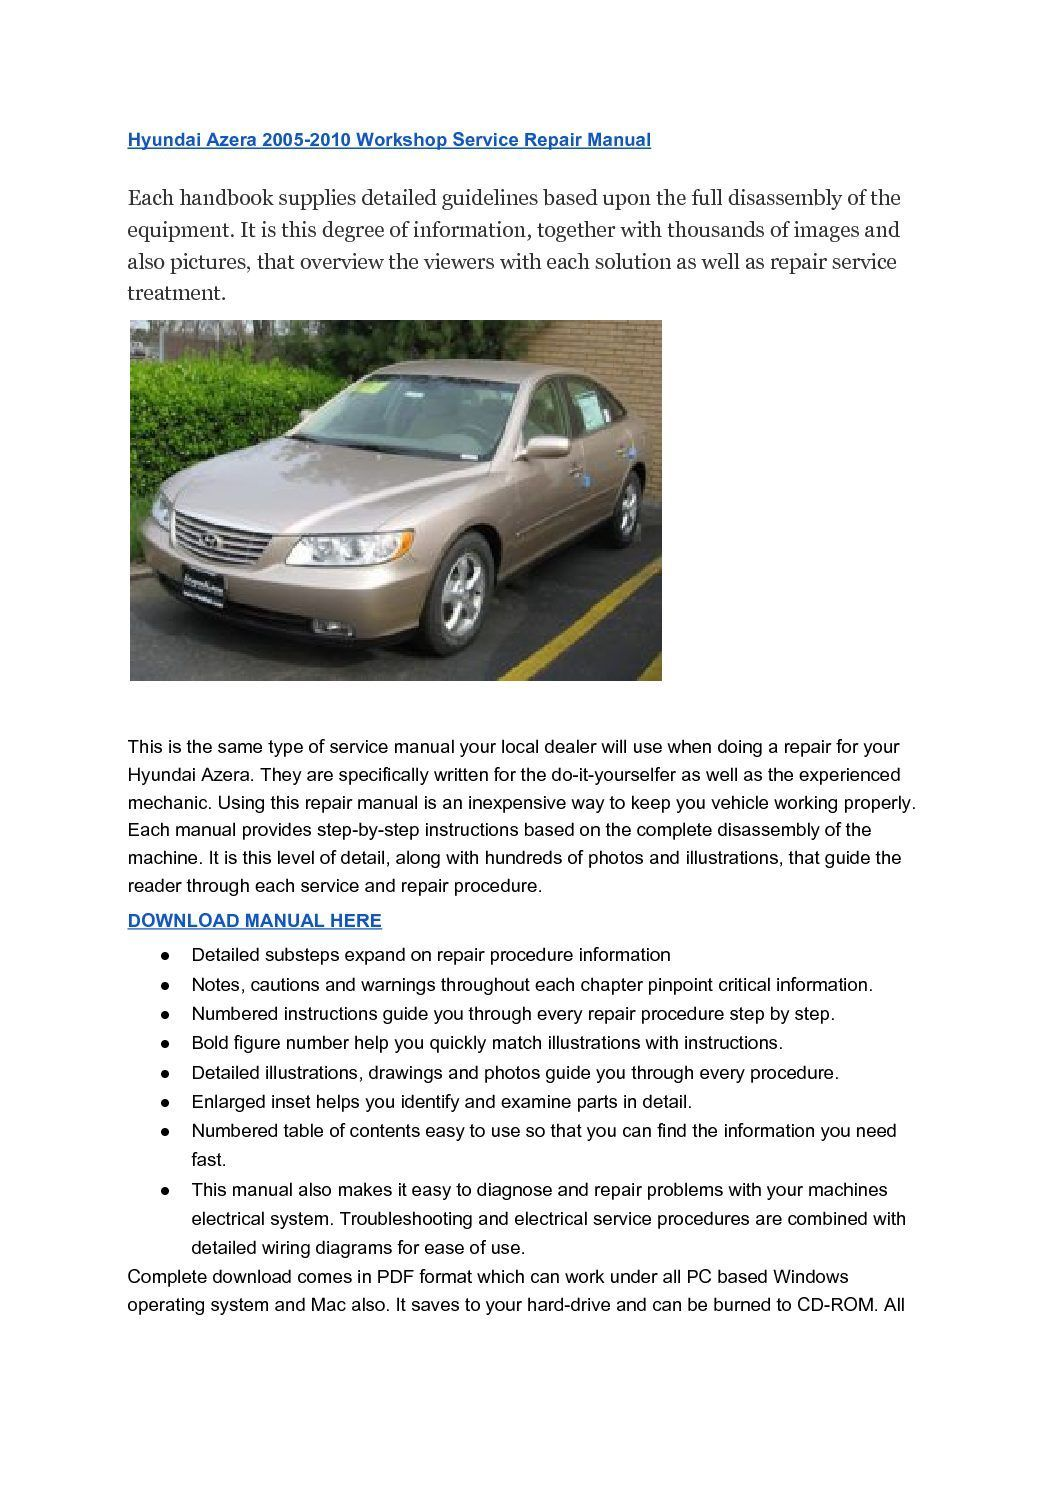 medium resolution of assistance hyundai azera 2005 2010 workshop service repair manual hyundai azera 2005 2010 workshop service repair manual notes warns as well as cautions